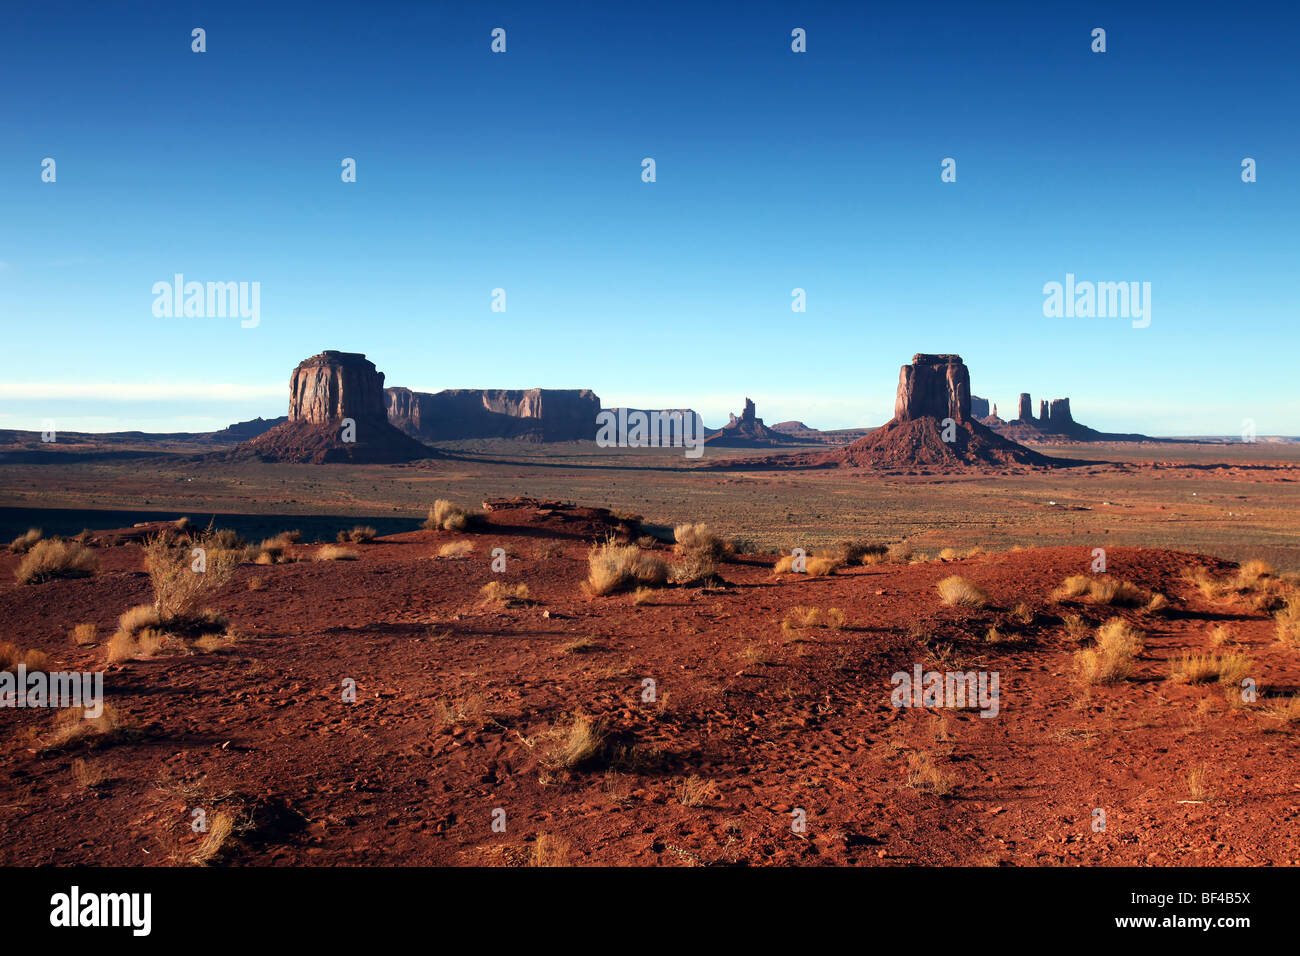 Many Buttes of Monumement Valley on a Clear Blue Sky Day - Stock Image